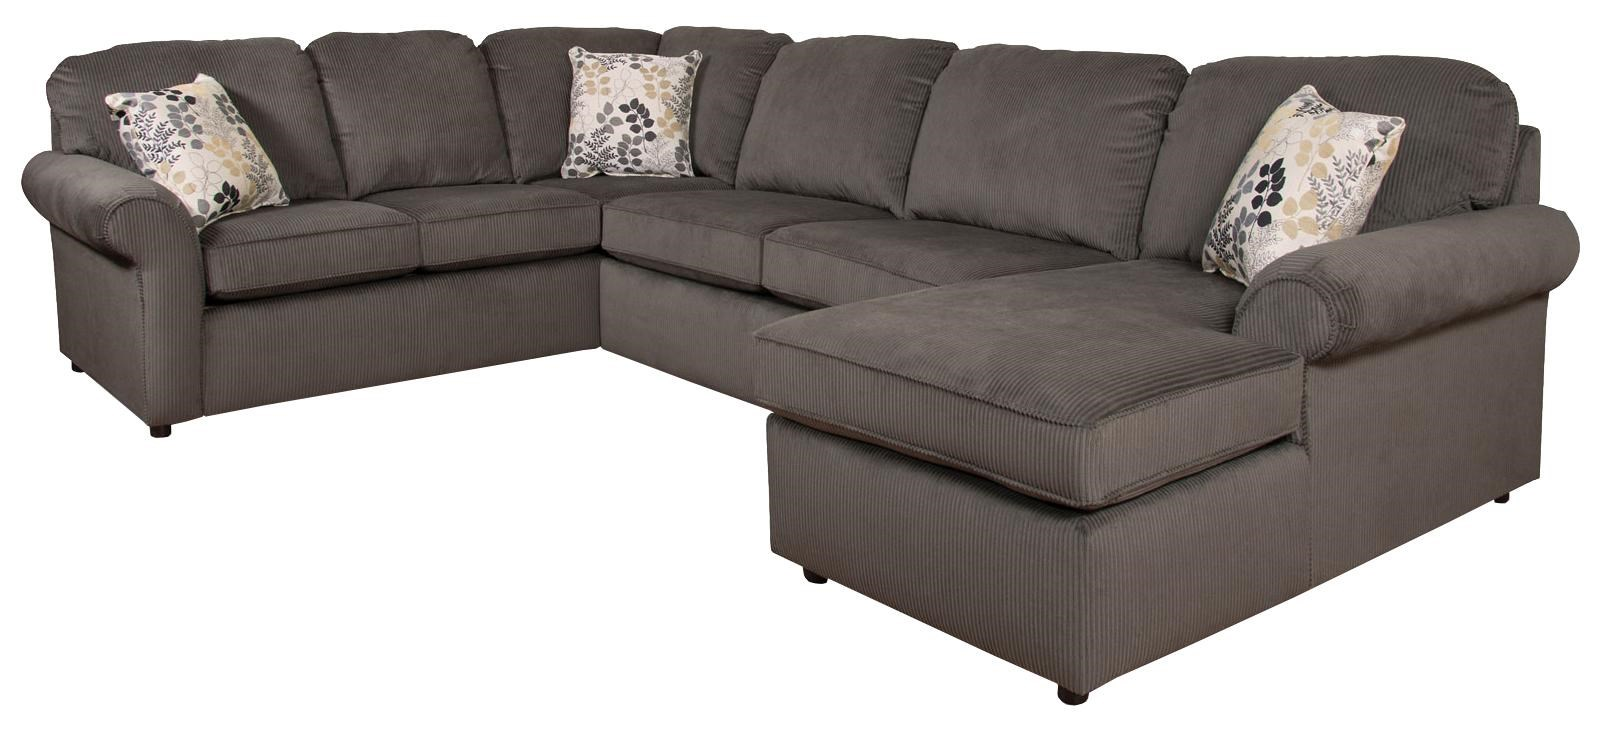 England Malibu 5-6 Seat (right side) Chaise Sectional Sofa  sc 1 st  A1 Furniture : malibu sectional - Sectionals, Sofas & Couches